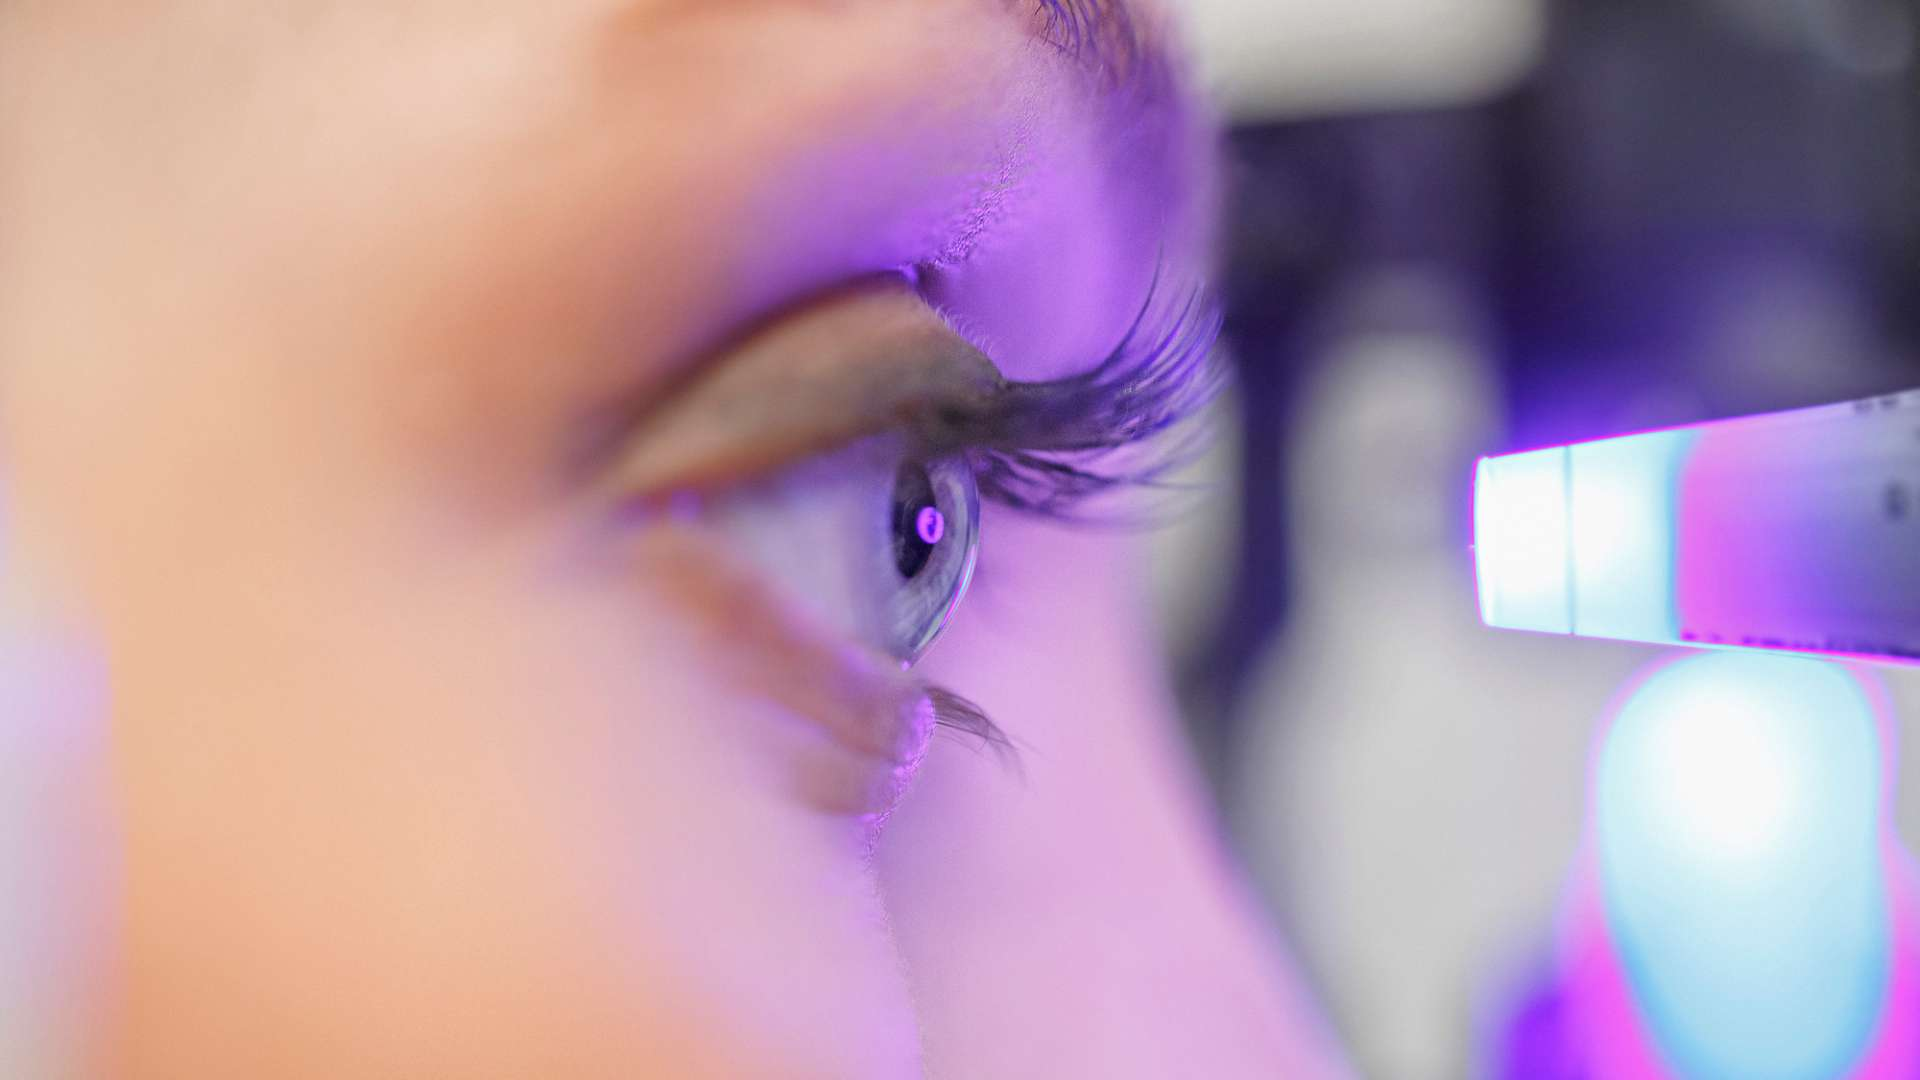 A photo of a person undergoing an eye examination with purple light